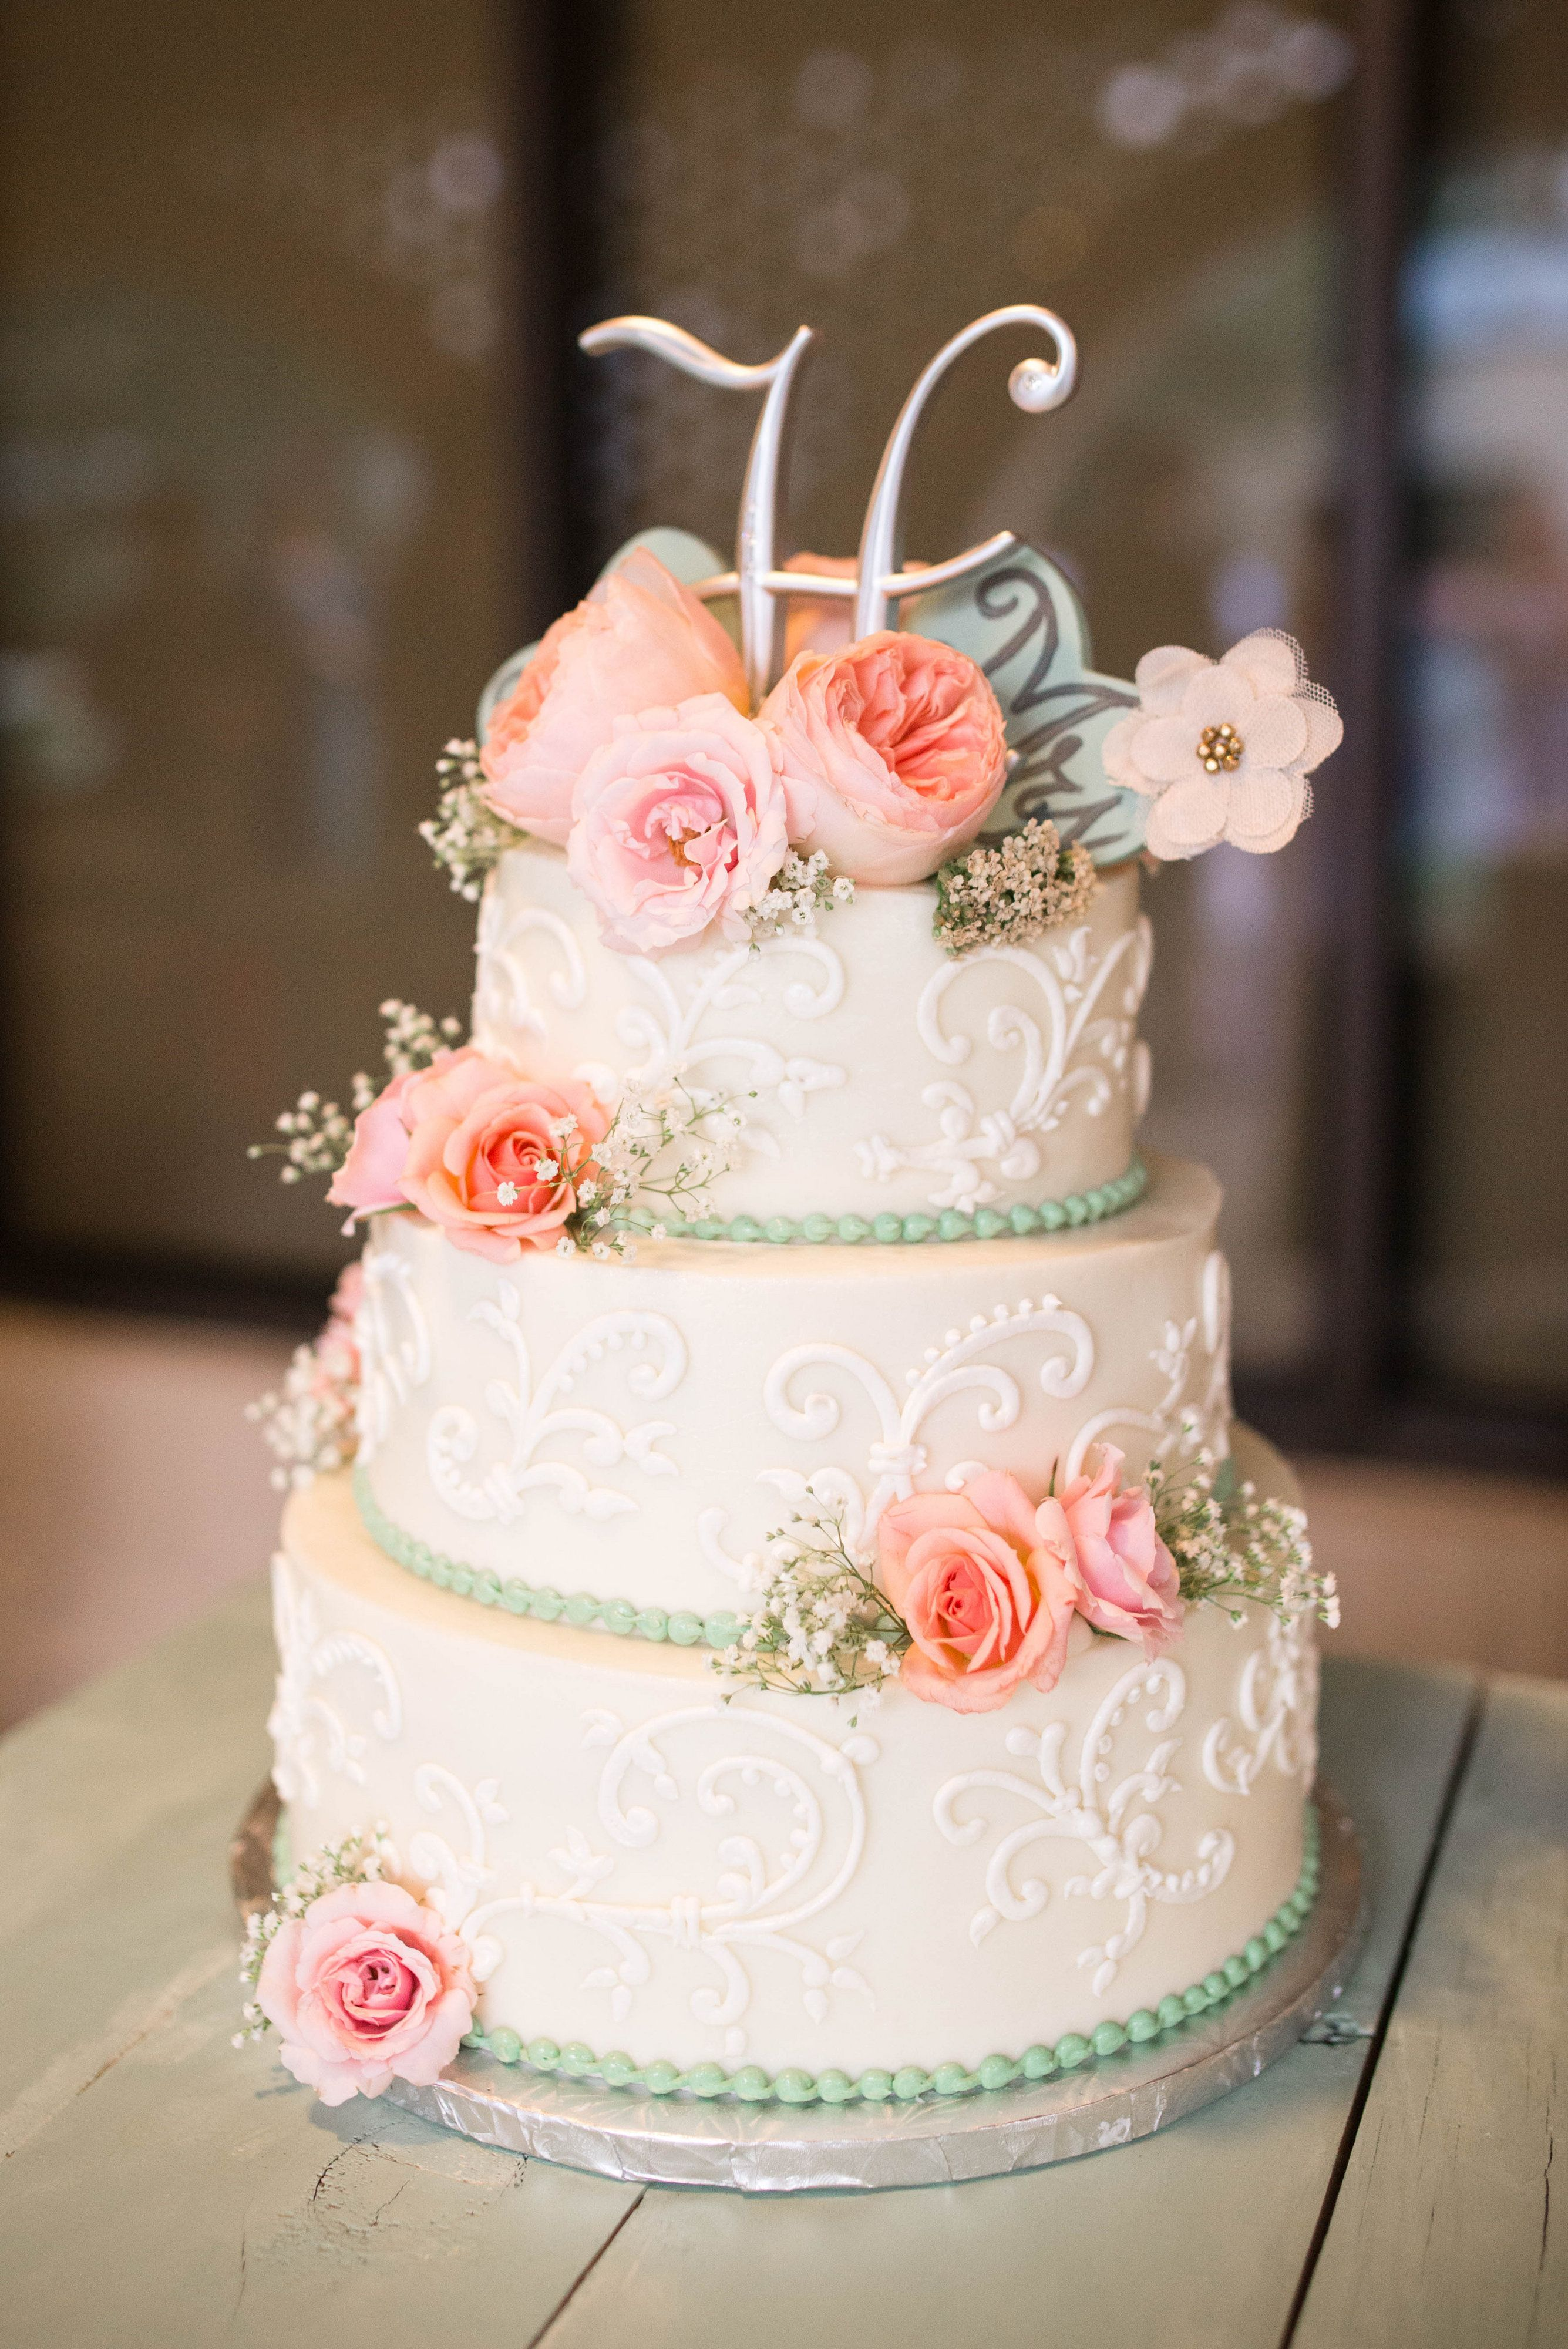 Three tier vintage inspired wedding cake with intricate piping and